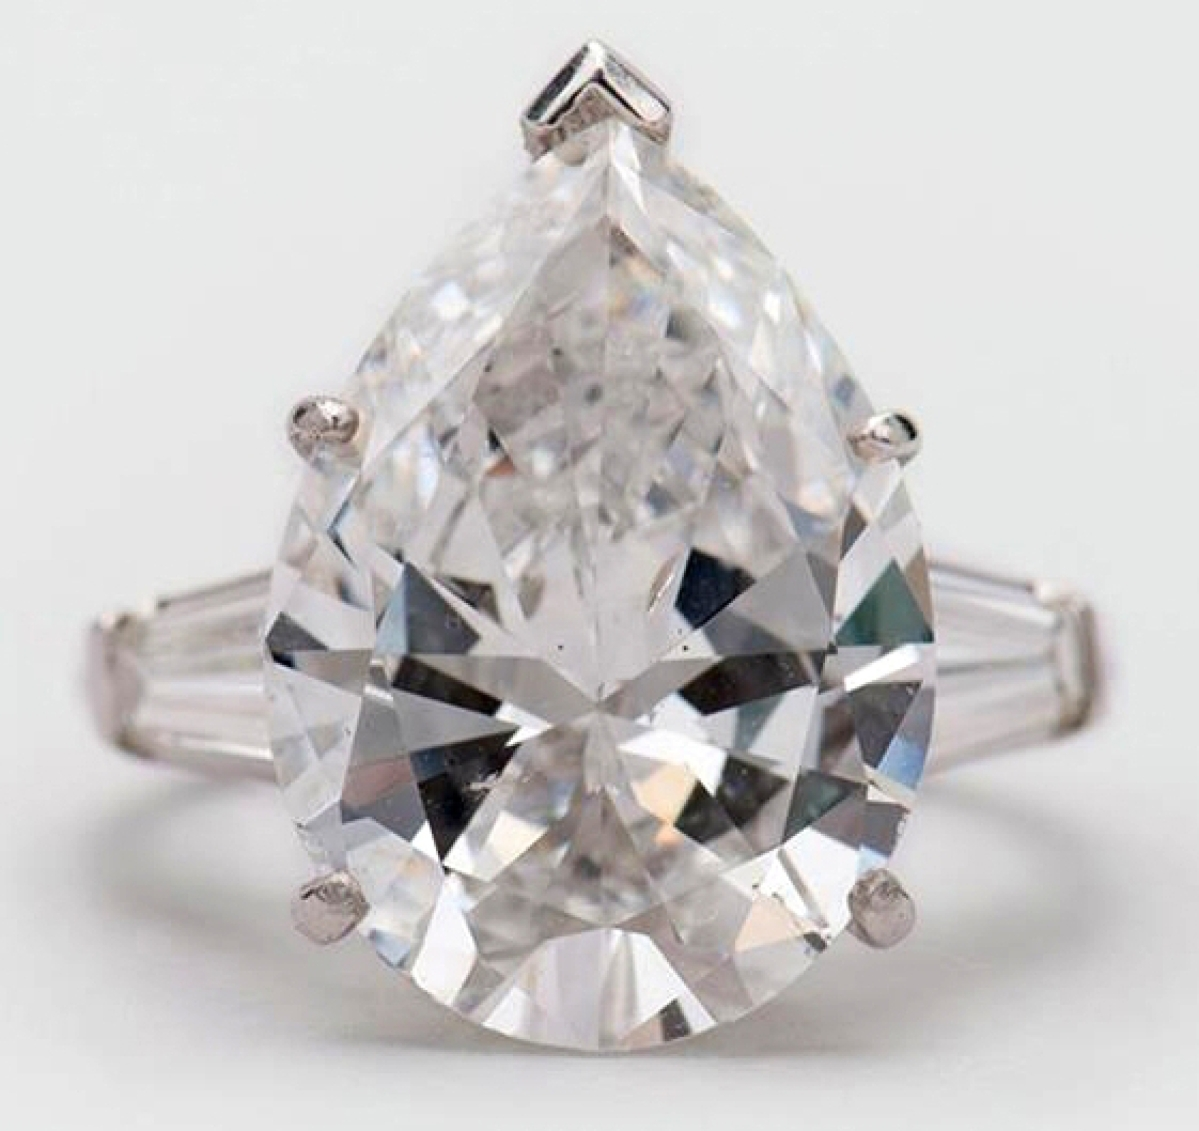 The highest price of the sale, $103,700, was achieved by this GIA-certified 9.19-carat platinum and diamond ring. It was prong-set with a pear-shape diamond, flanked by two tapered baguettes. Numerous phone bidders competed with the internet and a determined bidder in the room. Ultimately, the internet bidder was successful.